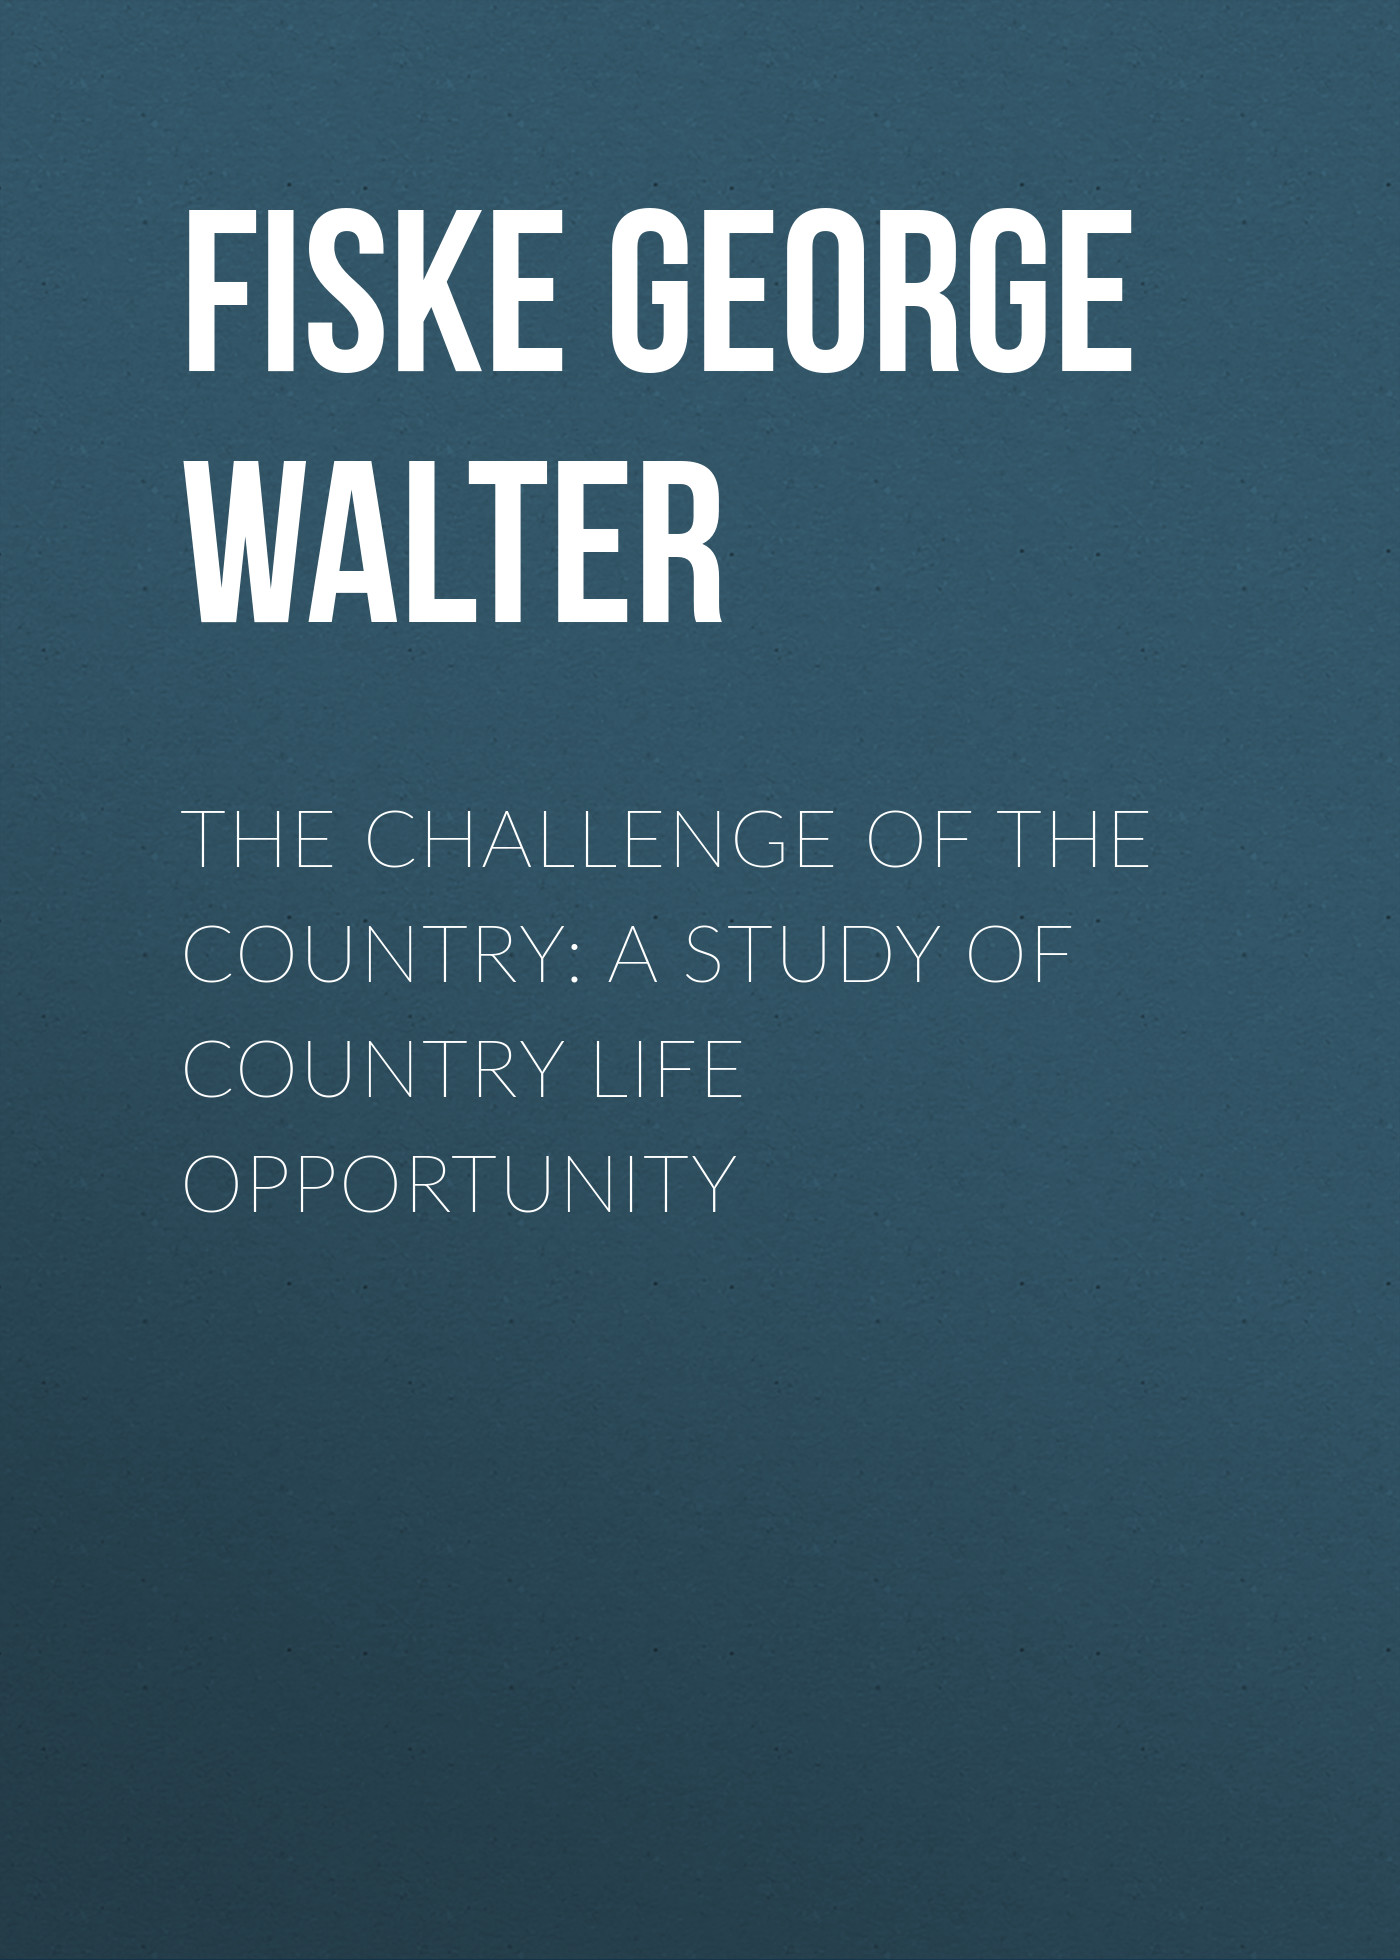 Fiske George Walter The Challenge of the Country: A Study of Country Life Opportunity leader of the country version of optimus prime jack bumblebee amplification without province